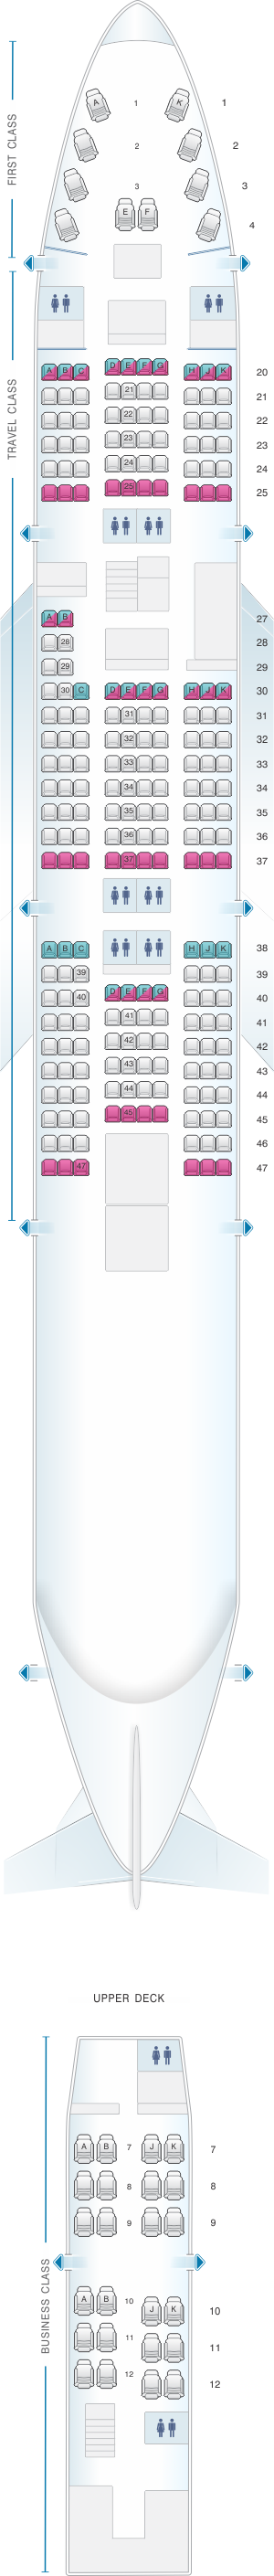 Seat map for Asiana Airlines Boeing B747 400 264PAX